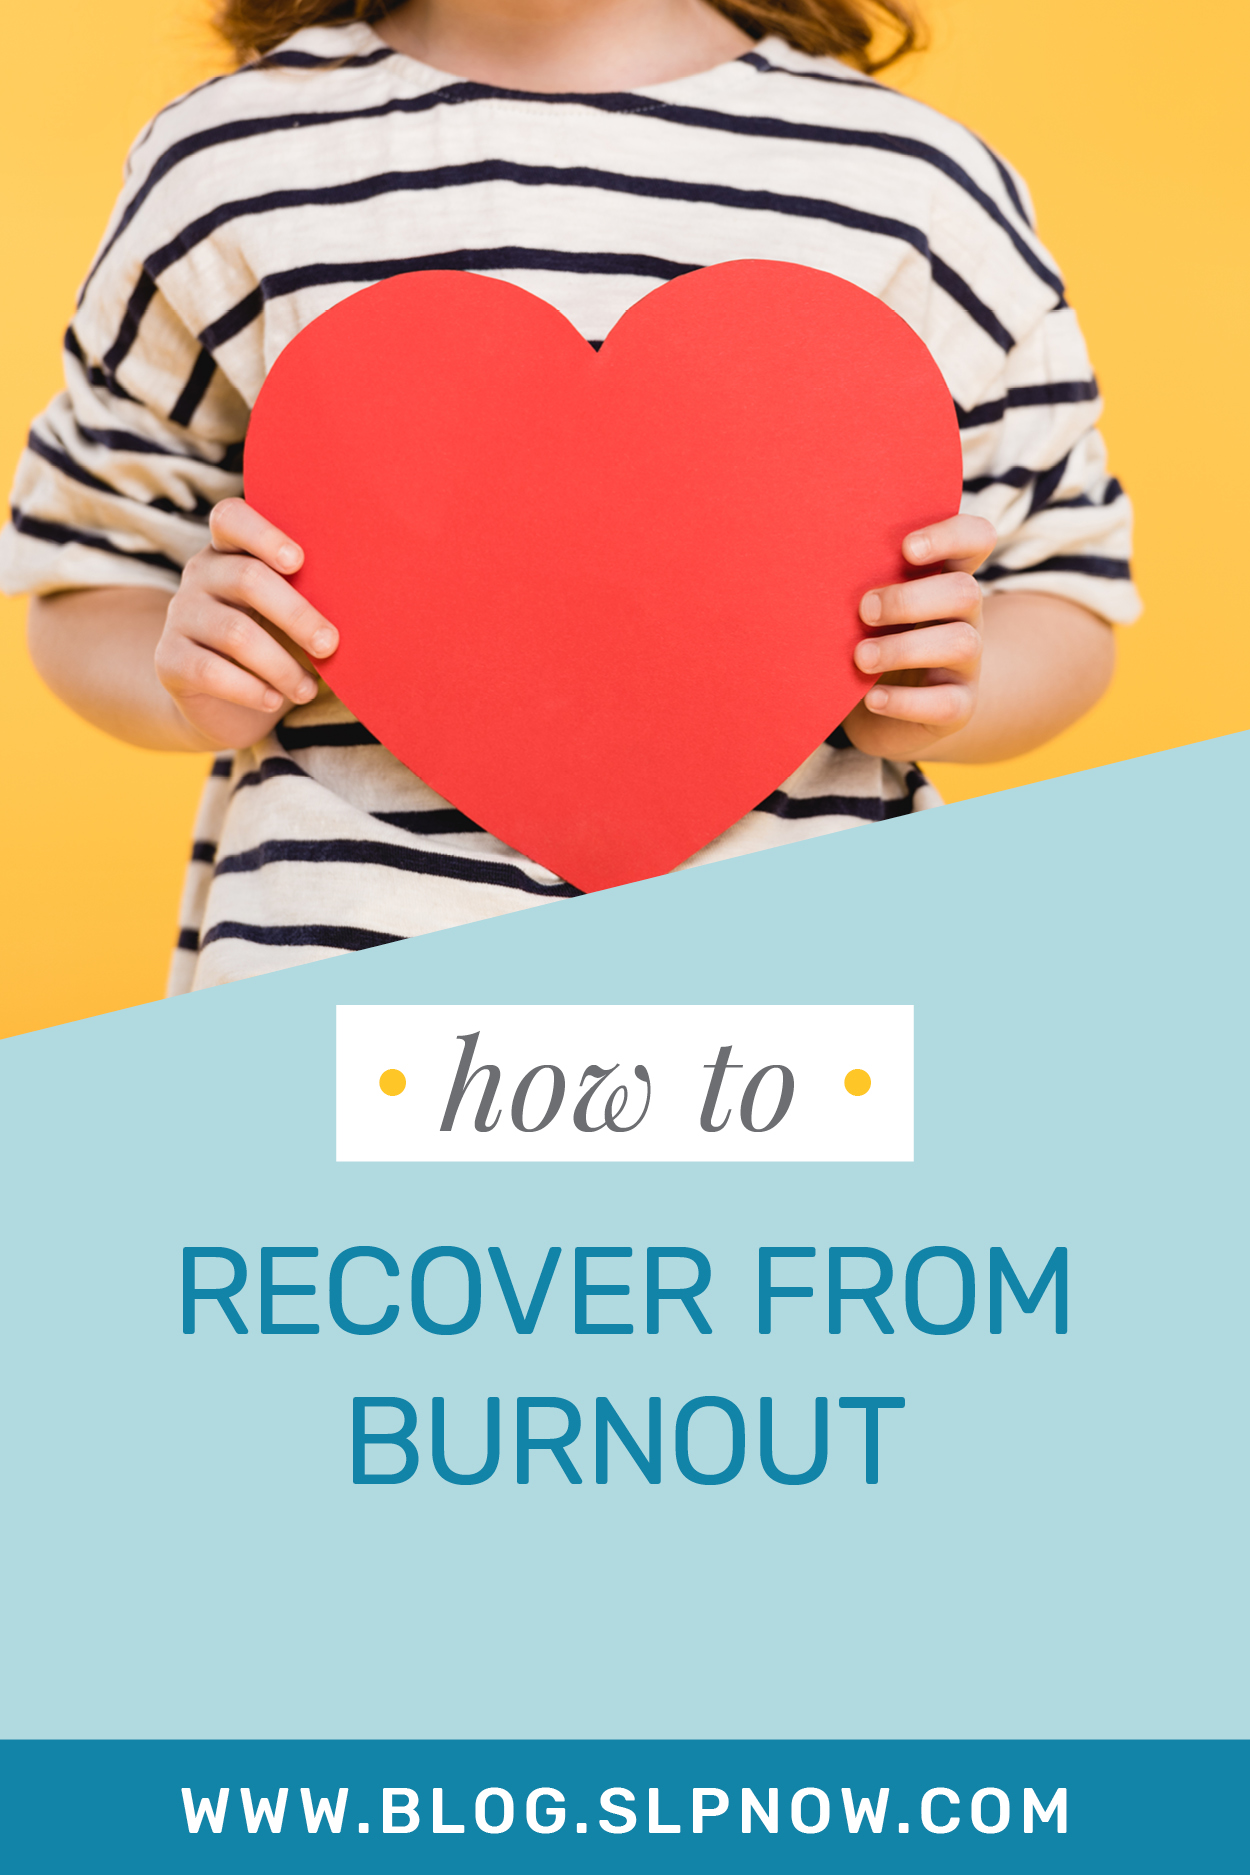 As SLPs, we have very busy jobs, and it's easy to fall into overwhelm and burnout. We have large caseloads, tons of different speech and language skills to target, and a variety of different ages of students to work with. It's understandable to get burned out! In this blog, I'm sharing actionable tips for recovering from burnout, so click through to get these tips.